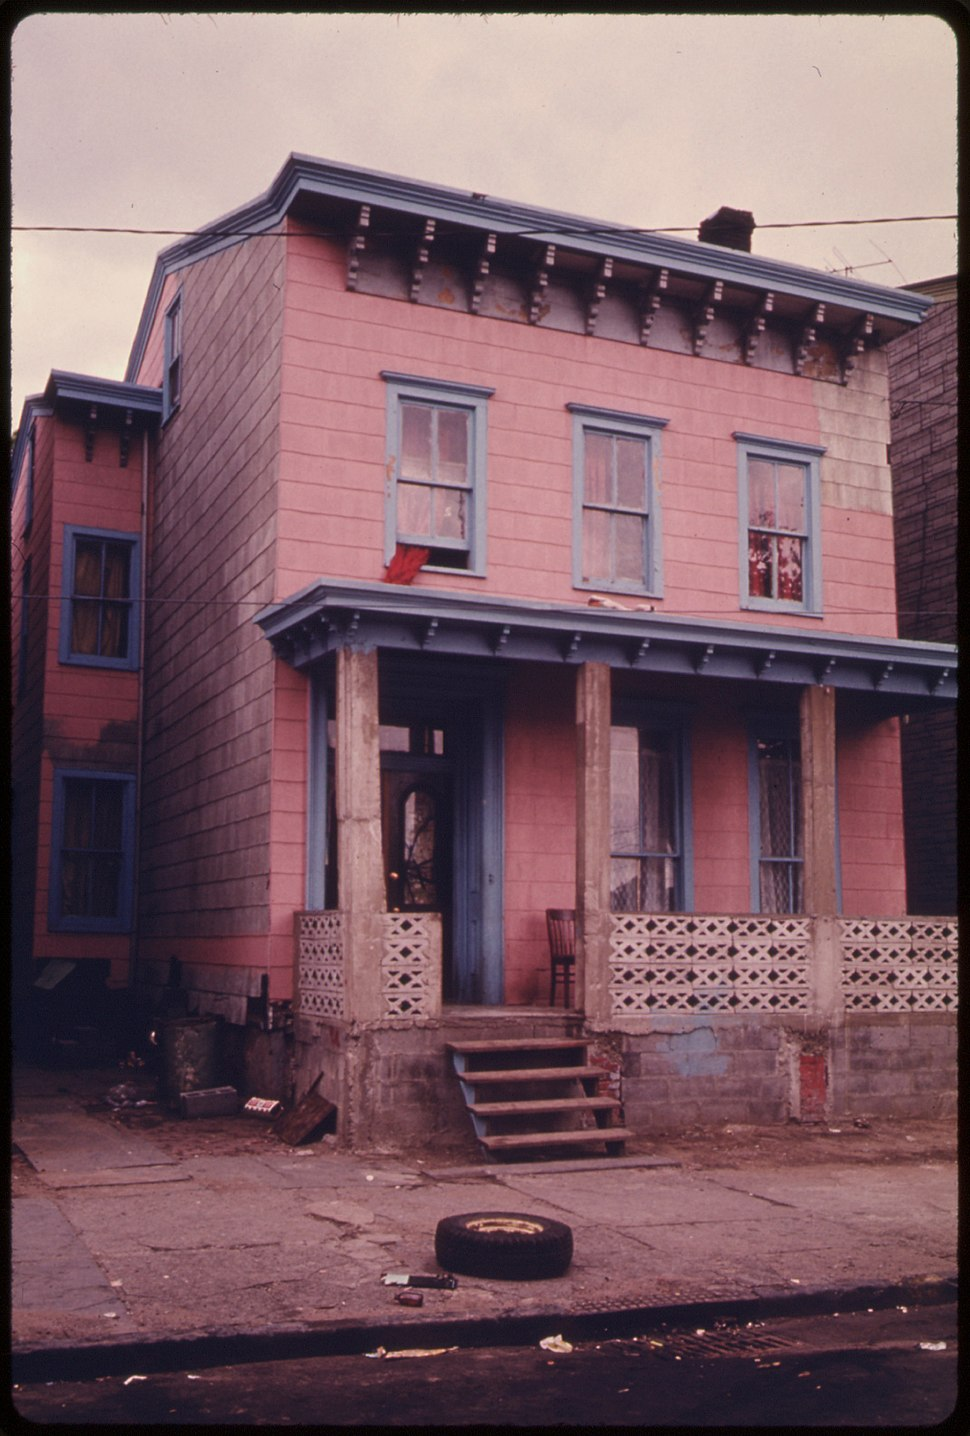 HOUSE IN THE INNER CITY OF PATERSON, NEW JERSEY. THE INNER CITY TODAY IS AN ABSOLUTE CONTRADICTION TO THE MAIN STREAM... - NARA - 555903